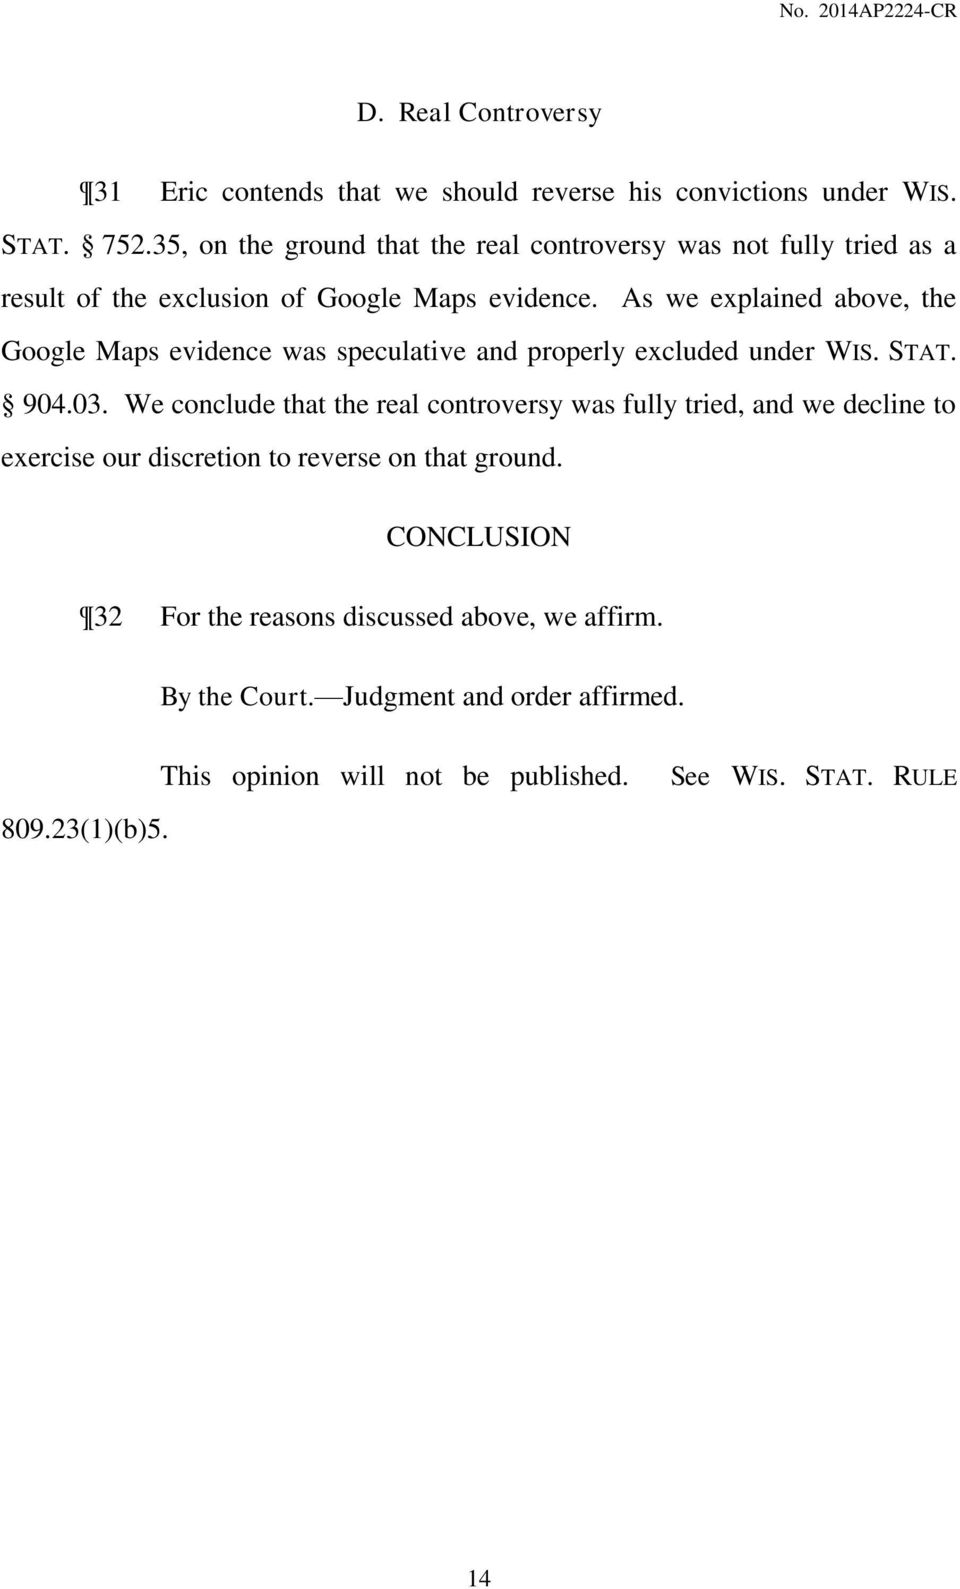 As we explained above, the Google Maps evidence was speculative and properly excluded under WIS. STAT. 904.03.